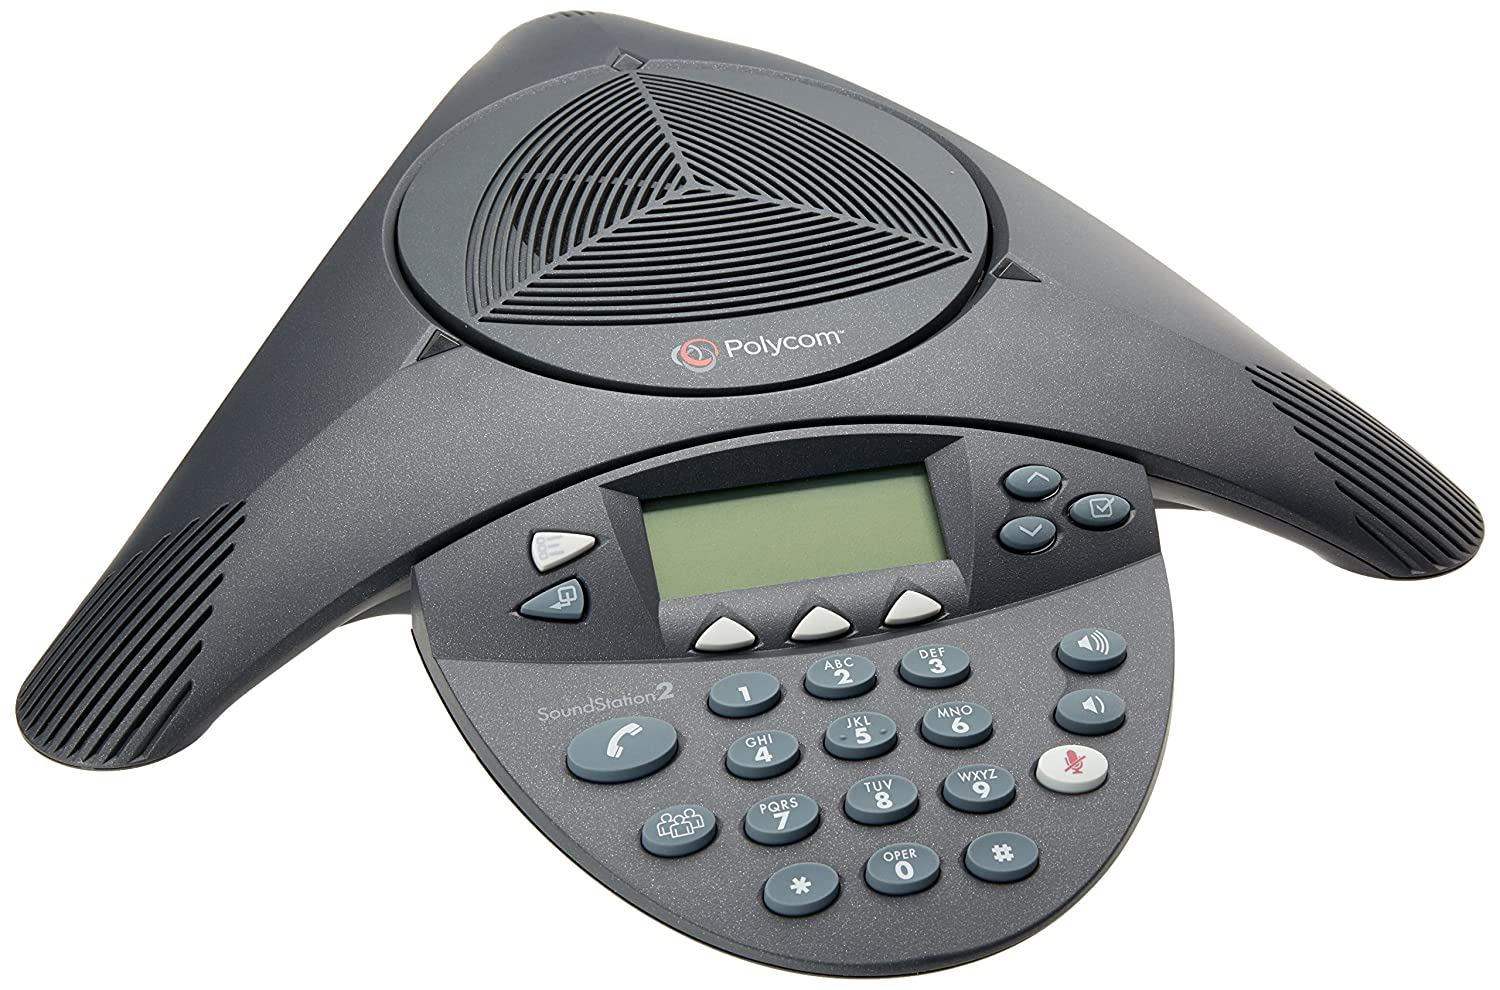 Polycom SoundStation 2 Review